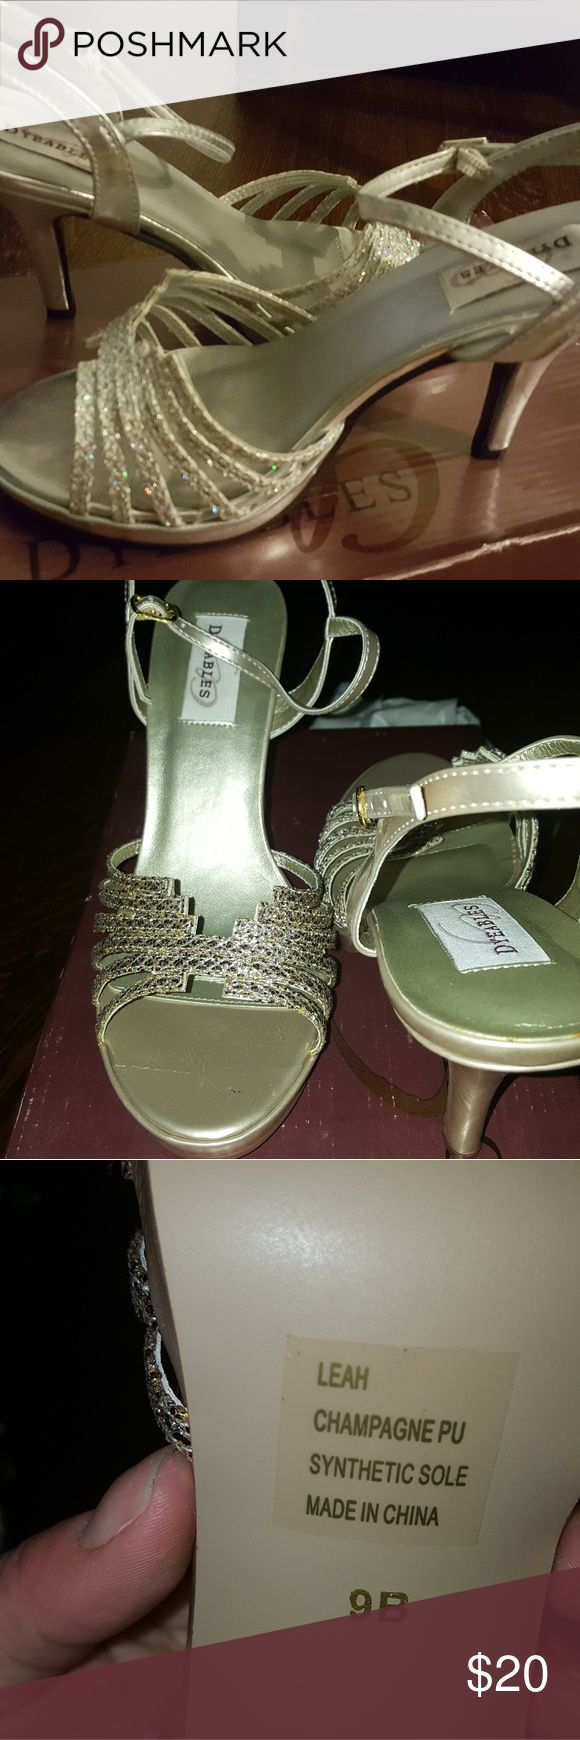 Dyeables (Leah) champagne wedding shoes. Champagne gold bridesmaid shoes, worn once. 3-3.5 inch heels. Dyeables Shoes Heels